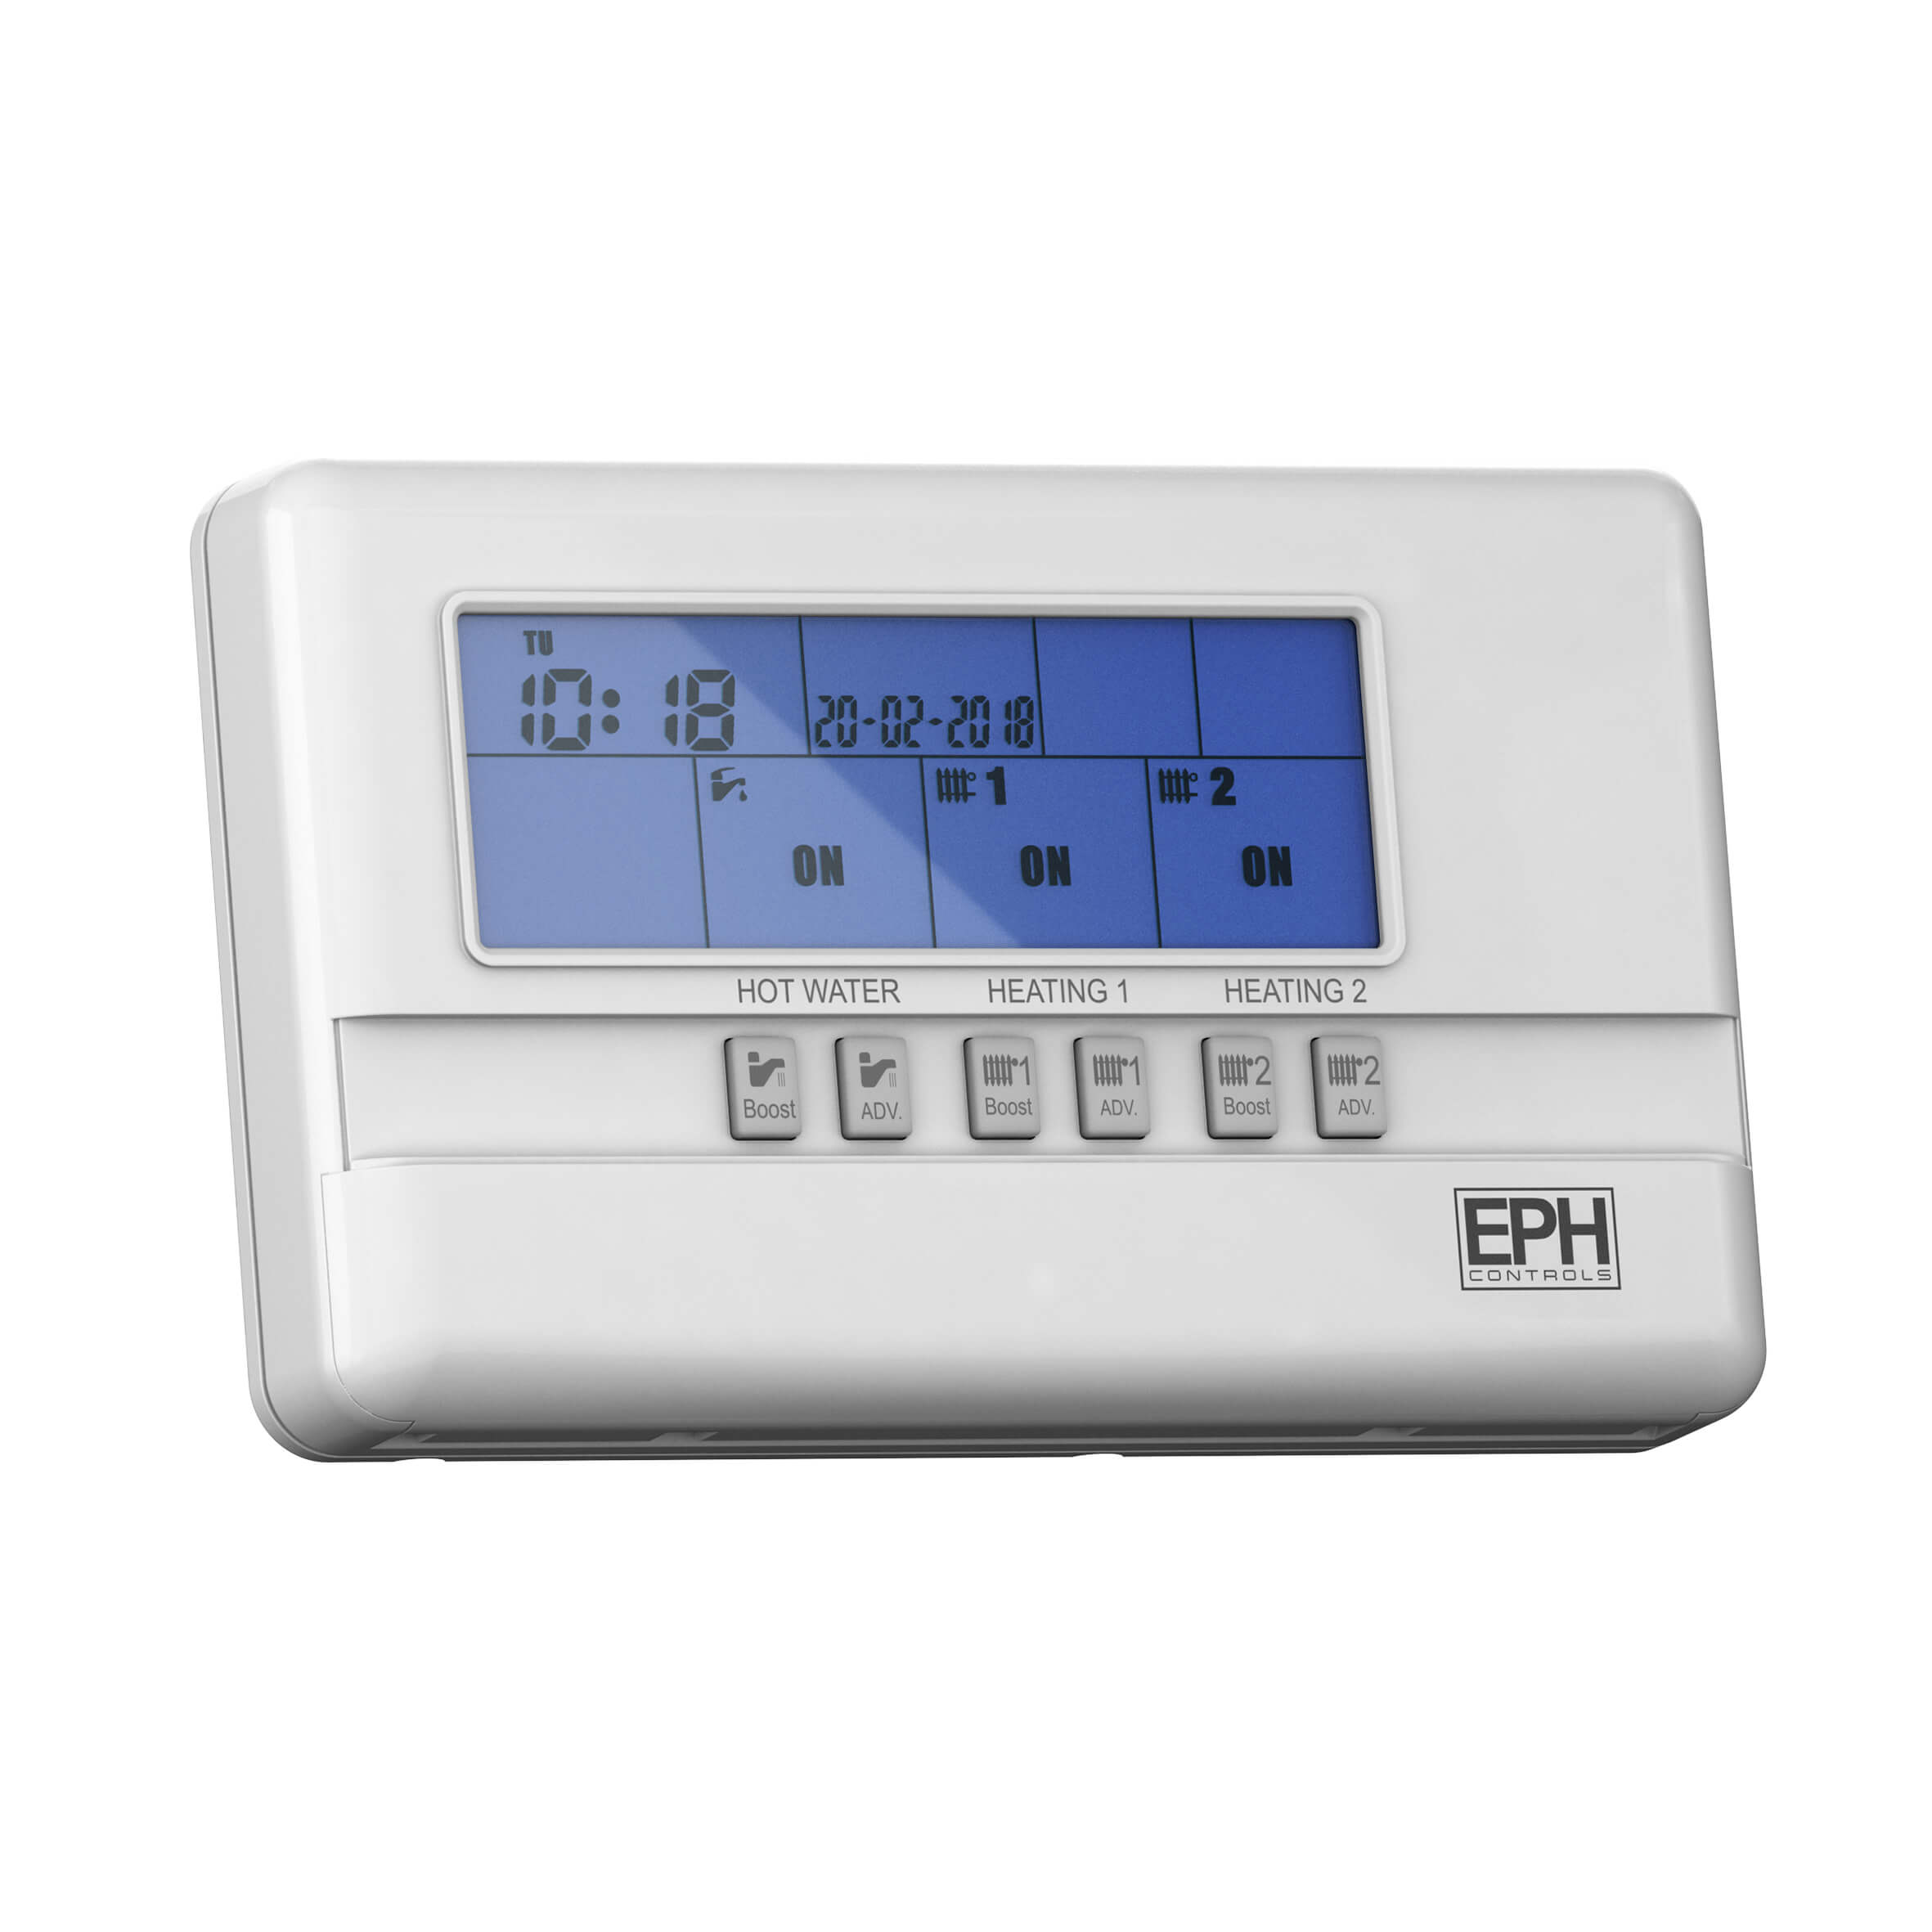 3 Zone Programmer Eph Controls Central Heating Wiring Diagram R37 Hw High Resolution 1045k